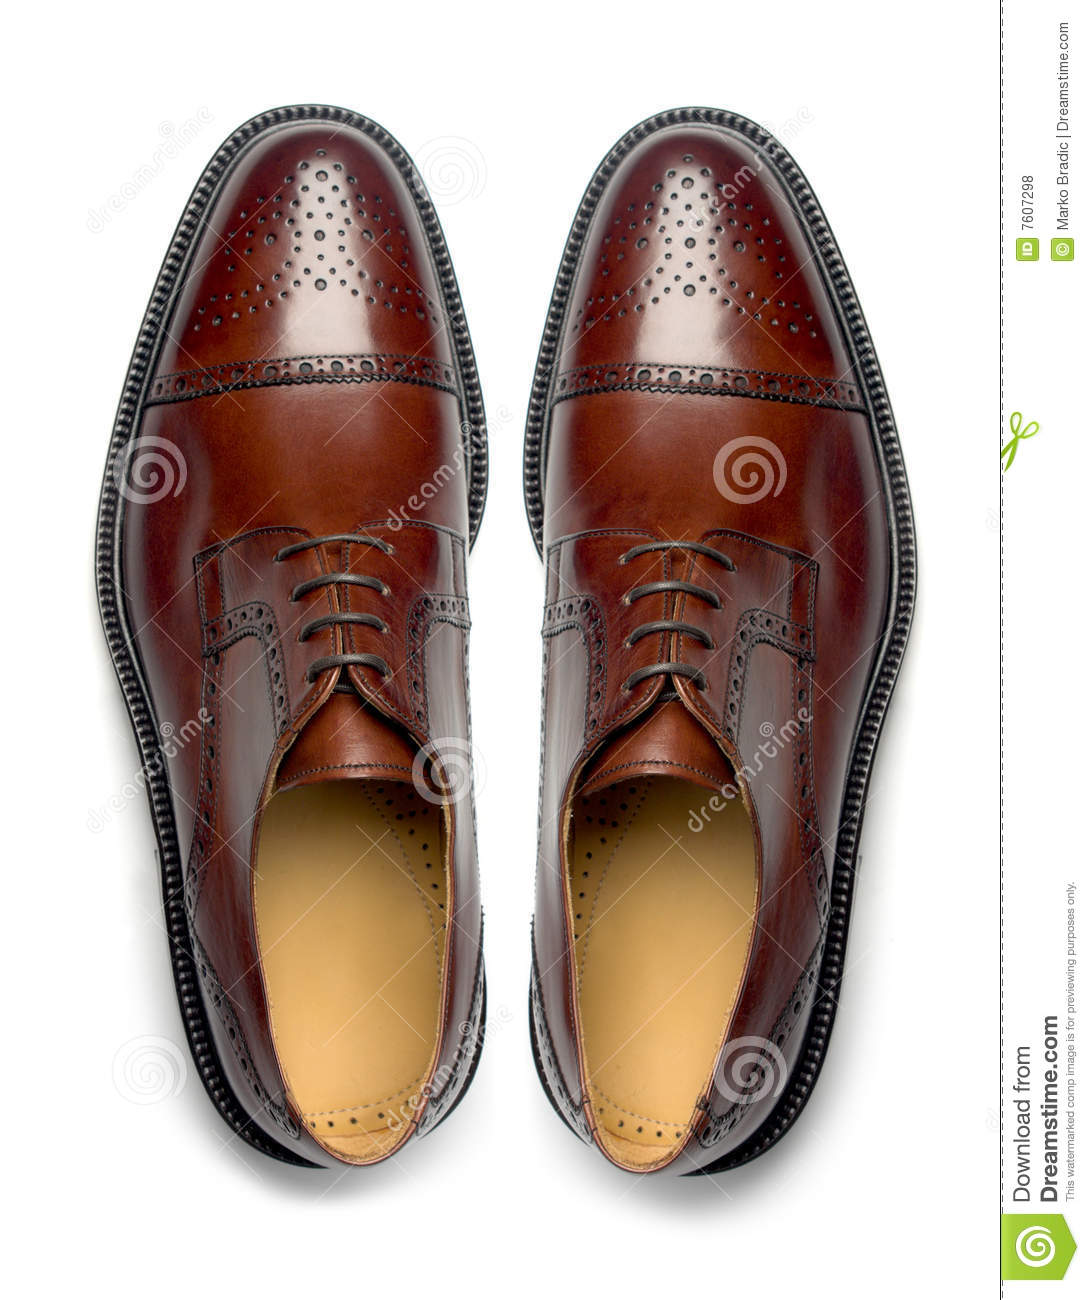 Pair Of Men U0026 39 S Shoes Stock Photo  Image Of Brown  Isolated